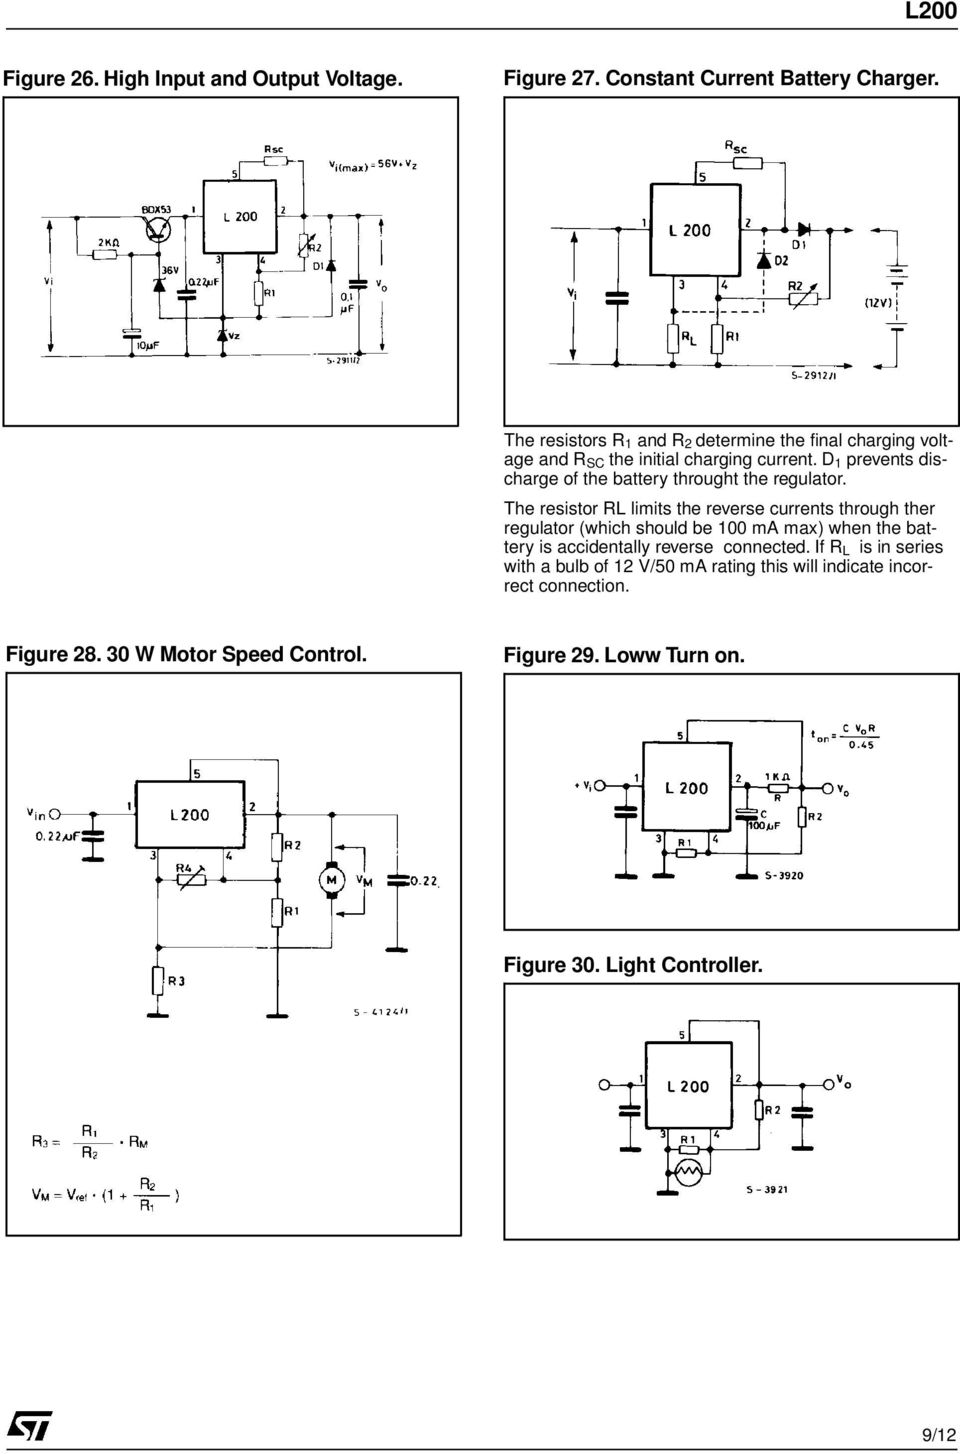 Adjustable Voltage And Current Regulator Pdf Battery Charger Circuit Diagram Using L200 D 1 Prevents Discharge Of The Throught